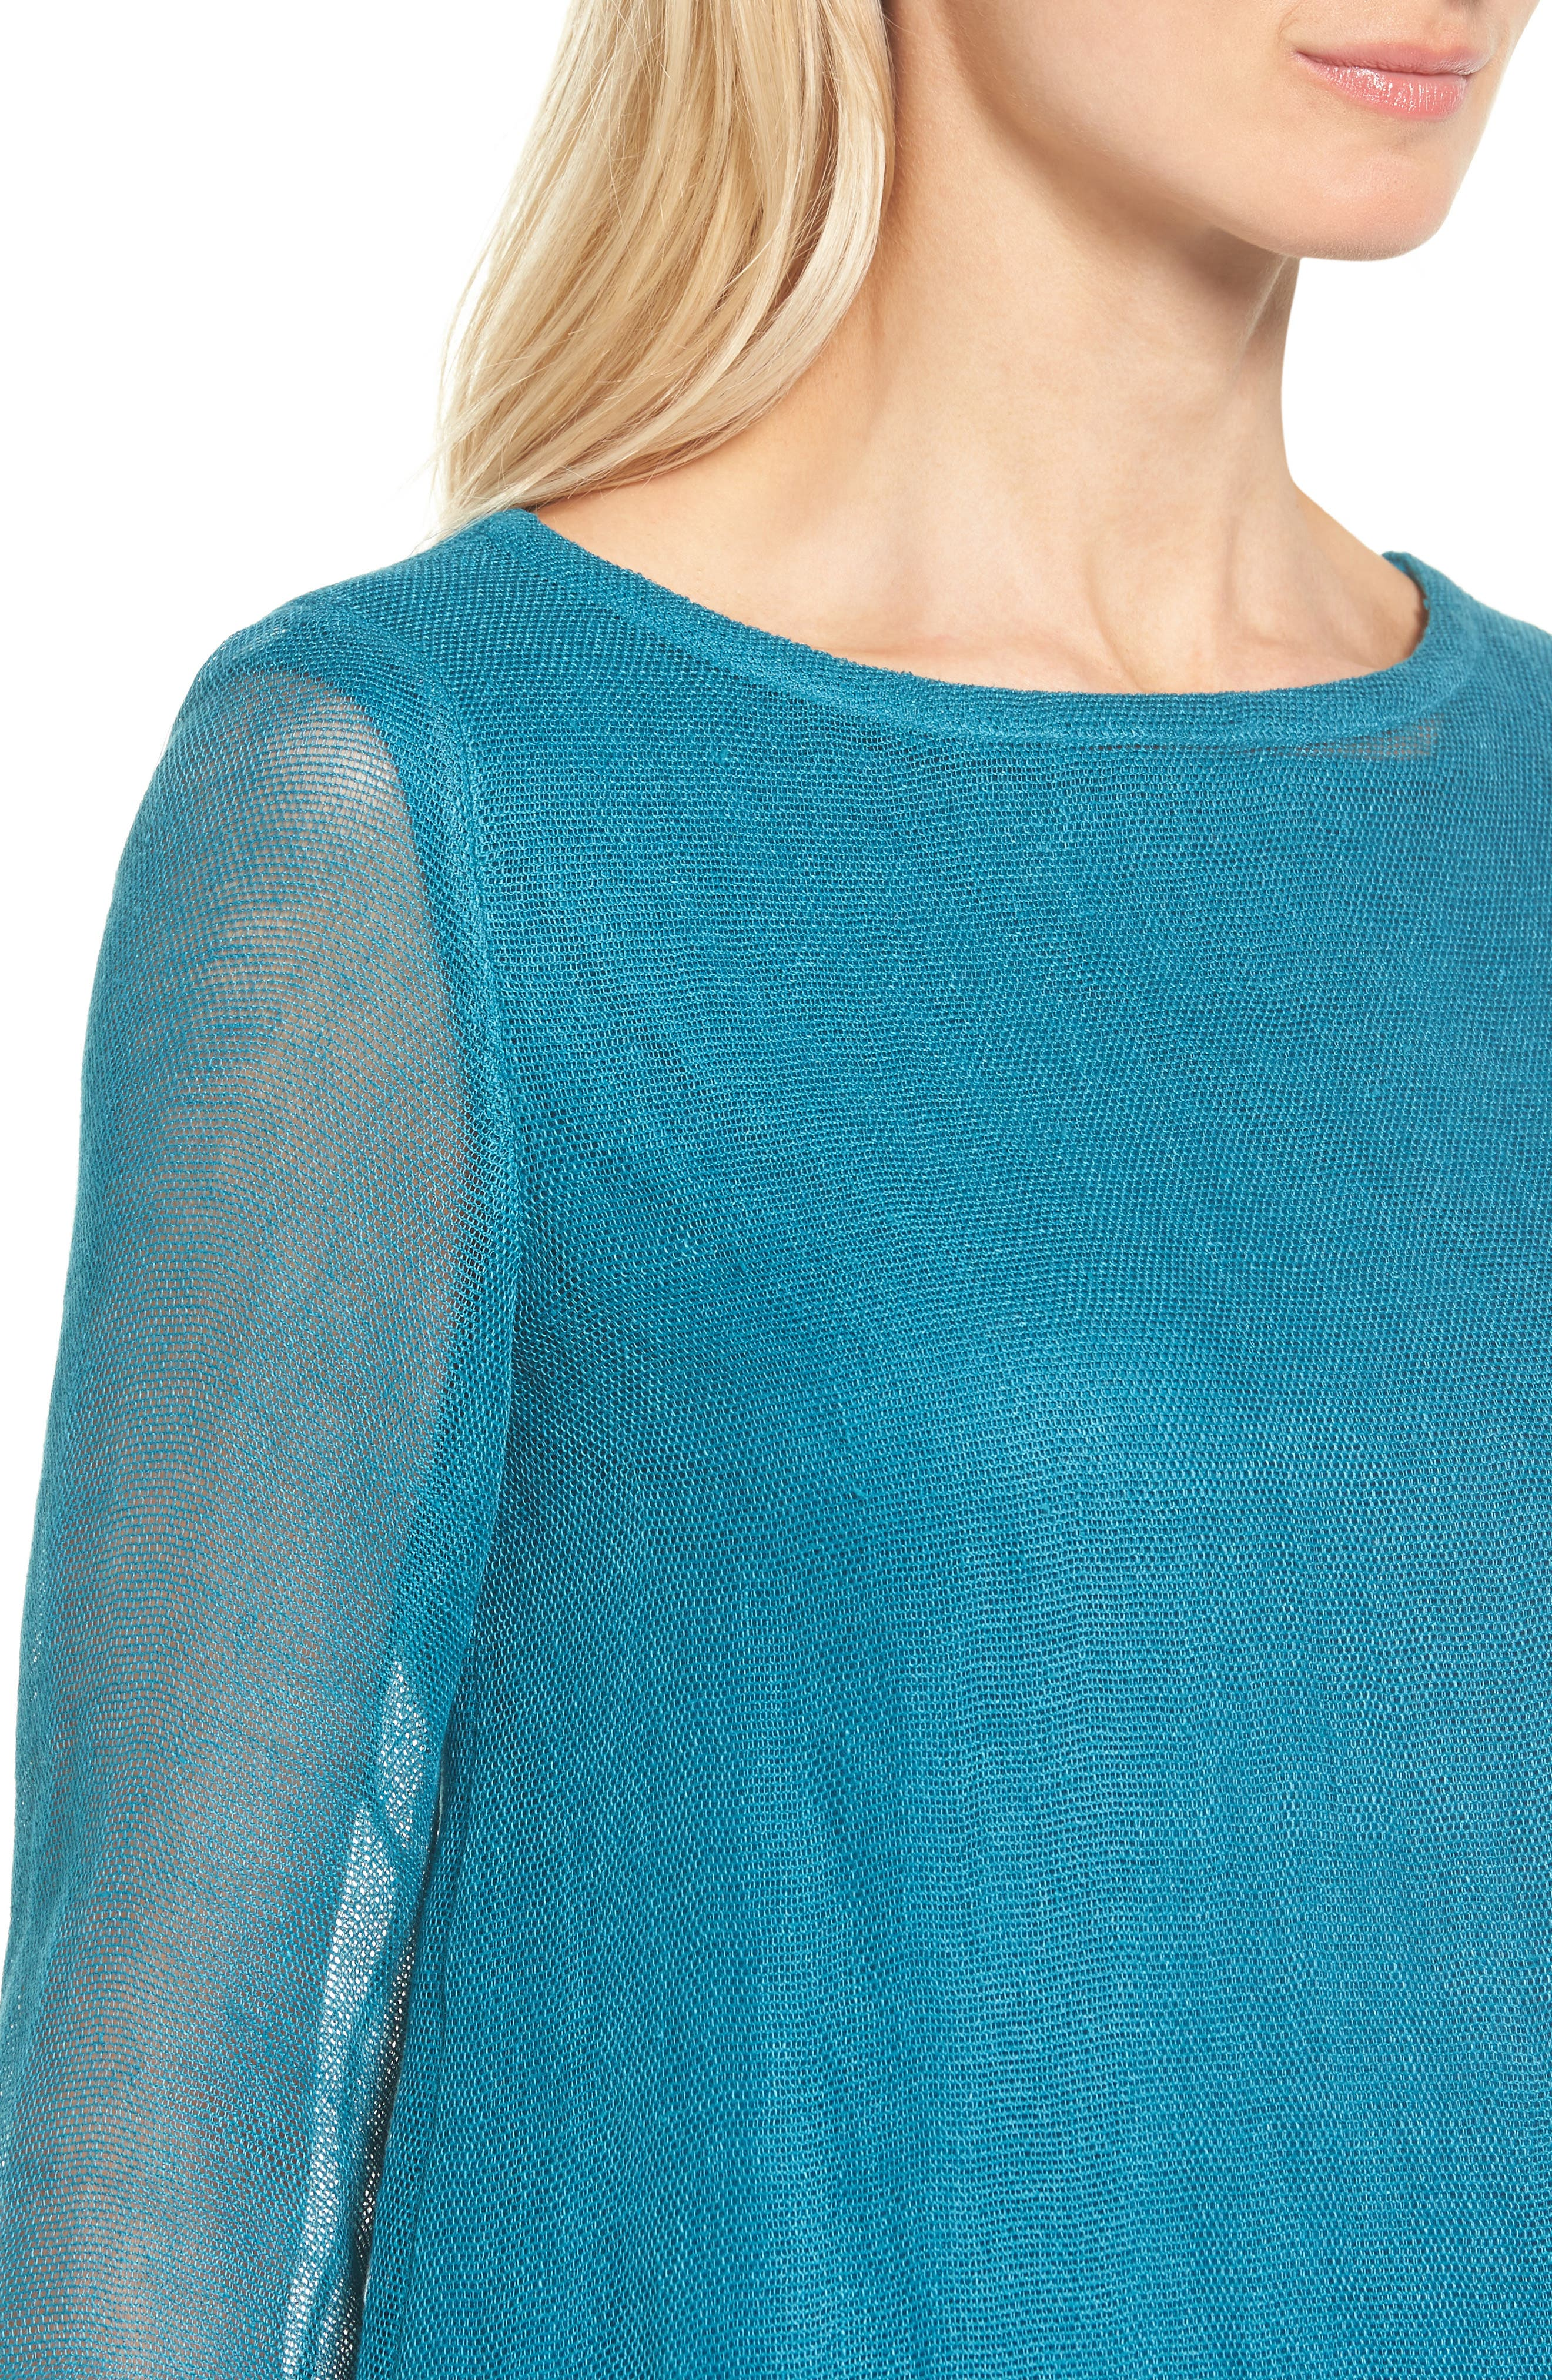 Organic Linen Blend Tunic,                             Alternate thumbnail 17, color,